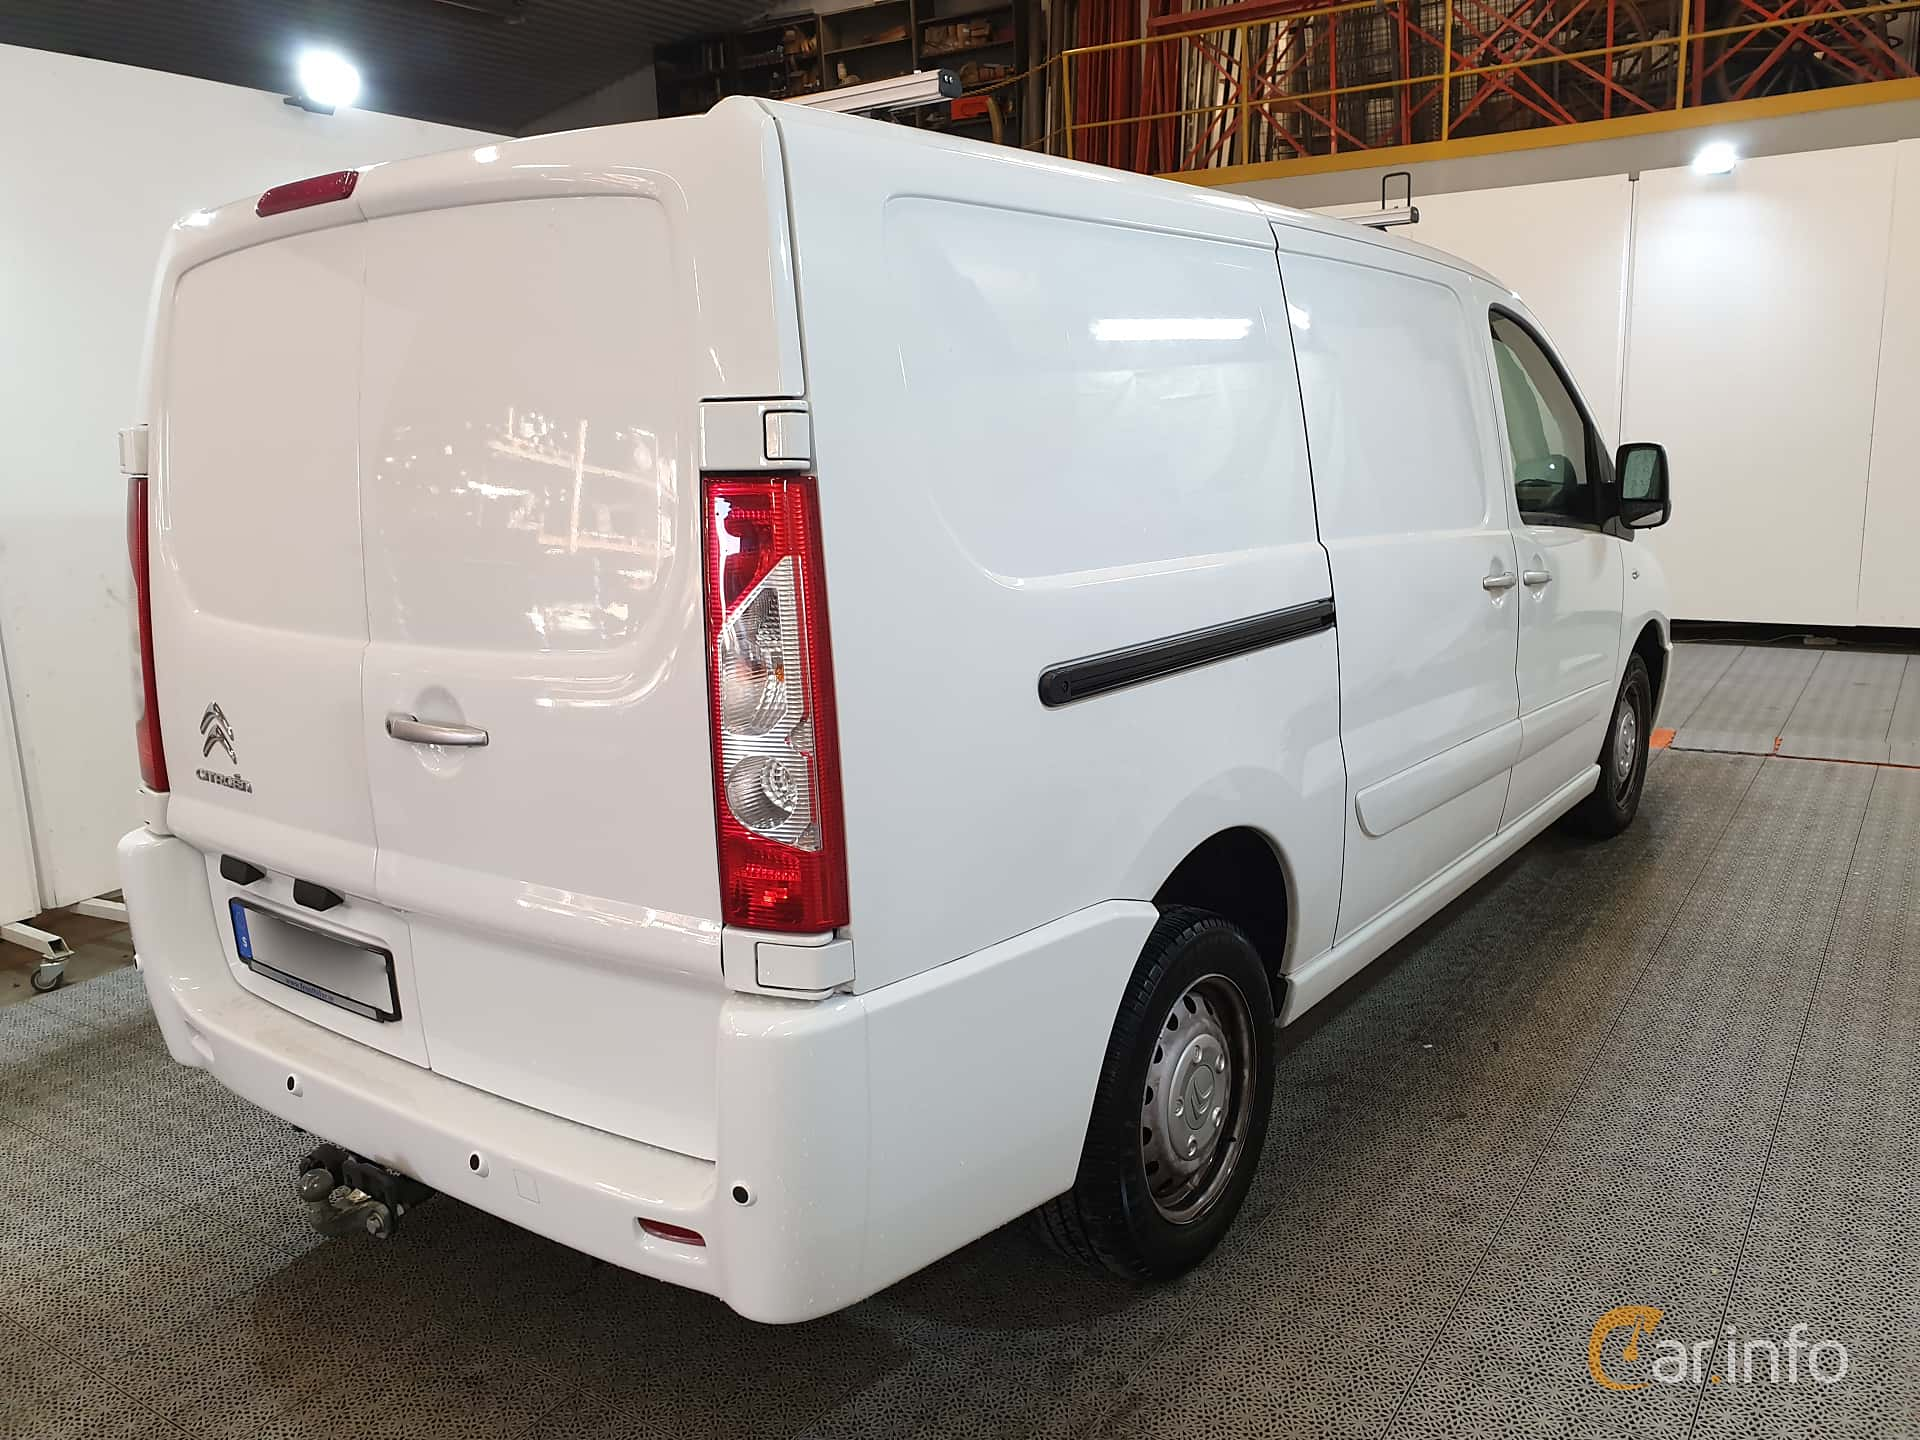 Citroën Jumpy Van 2.0 HDi Automatic, 163hp, 2016